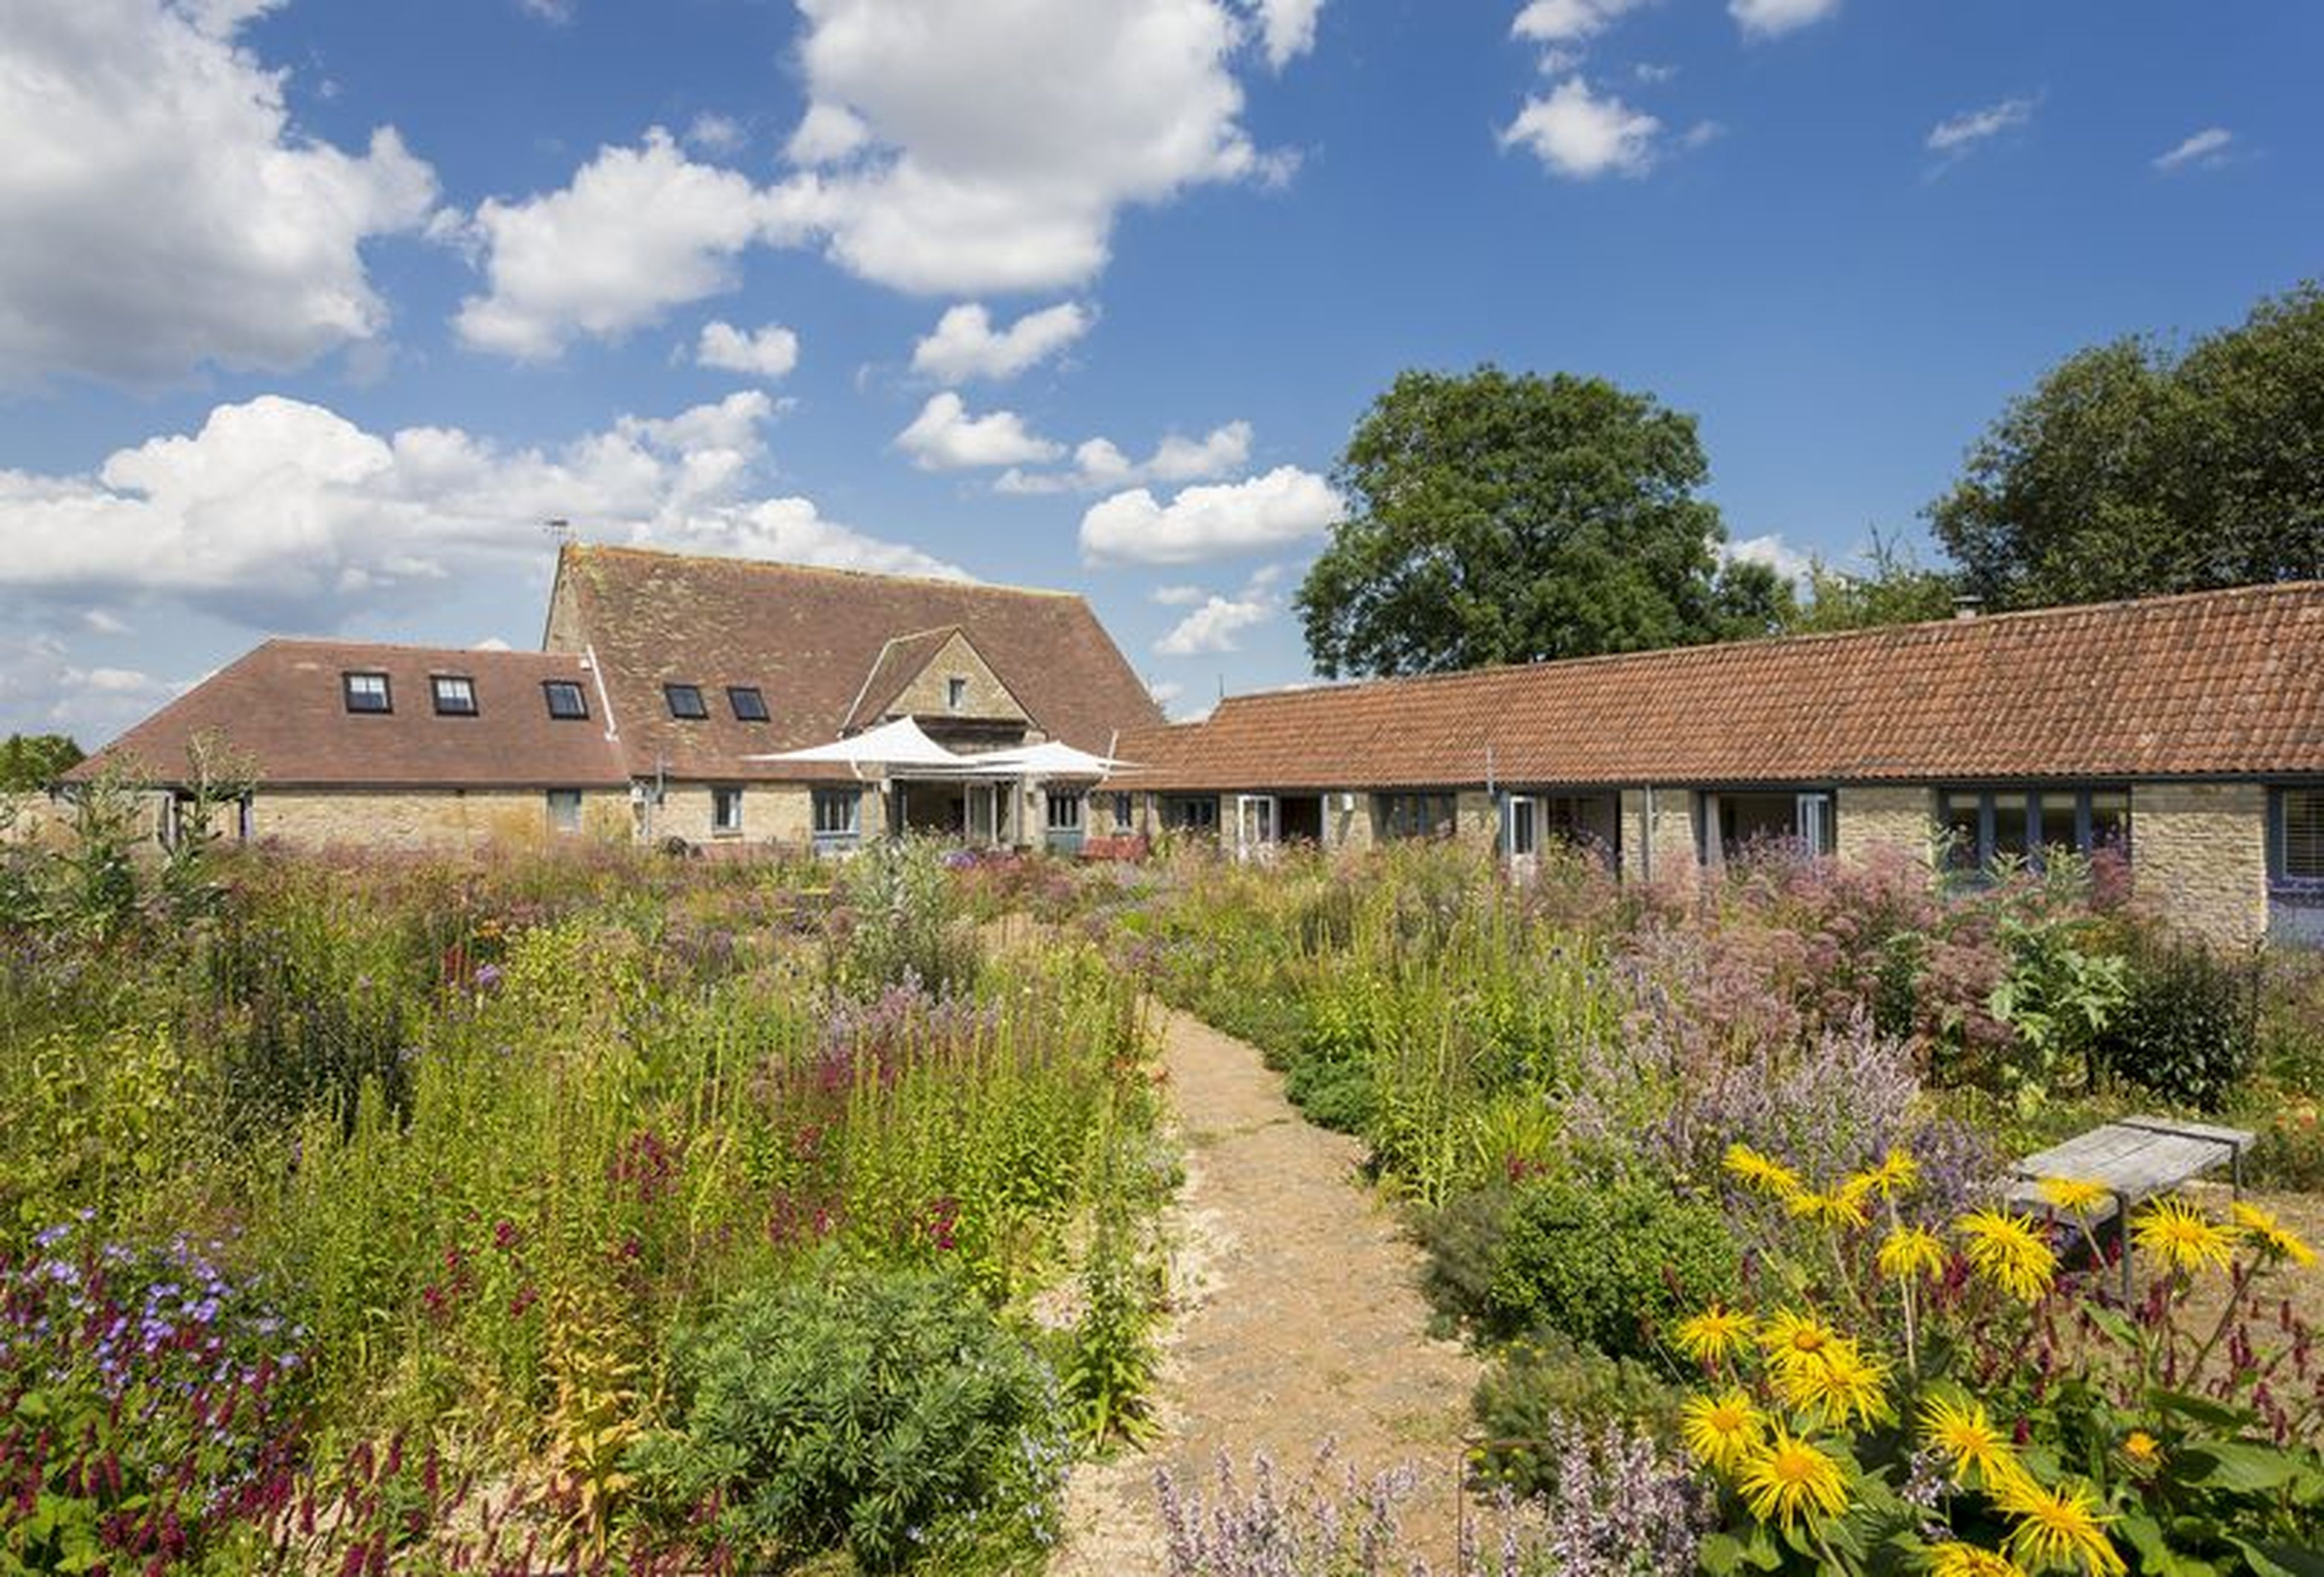 More information about Hailstone Barn (6 Guests) - ideal for a family holiday